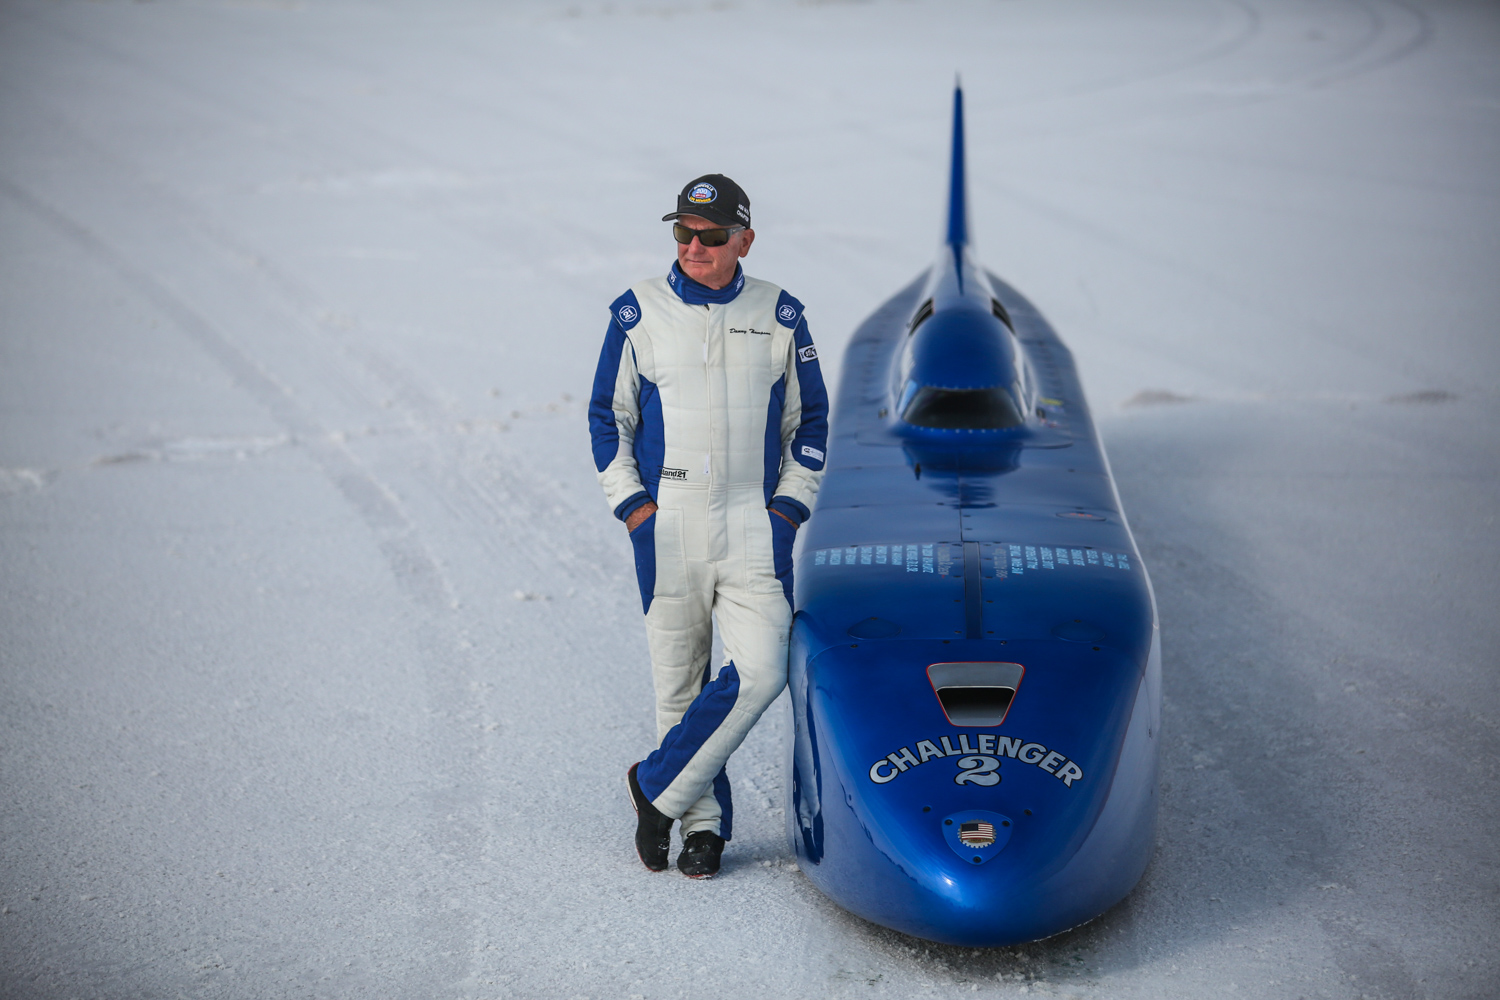 Challenger 2 salt flats with danny thompson